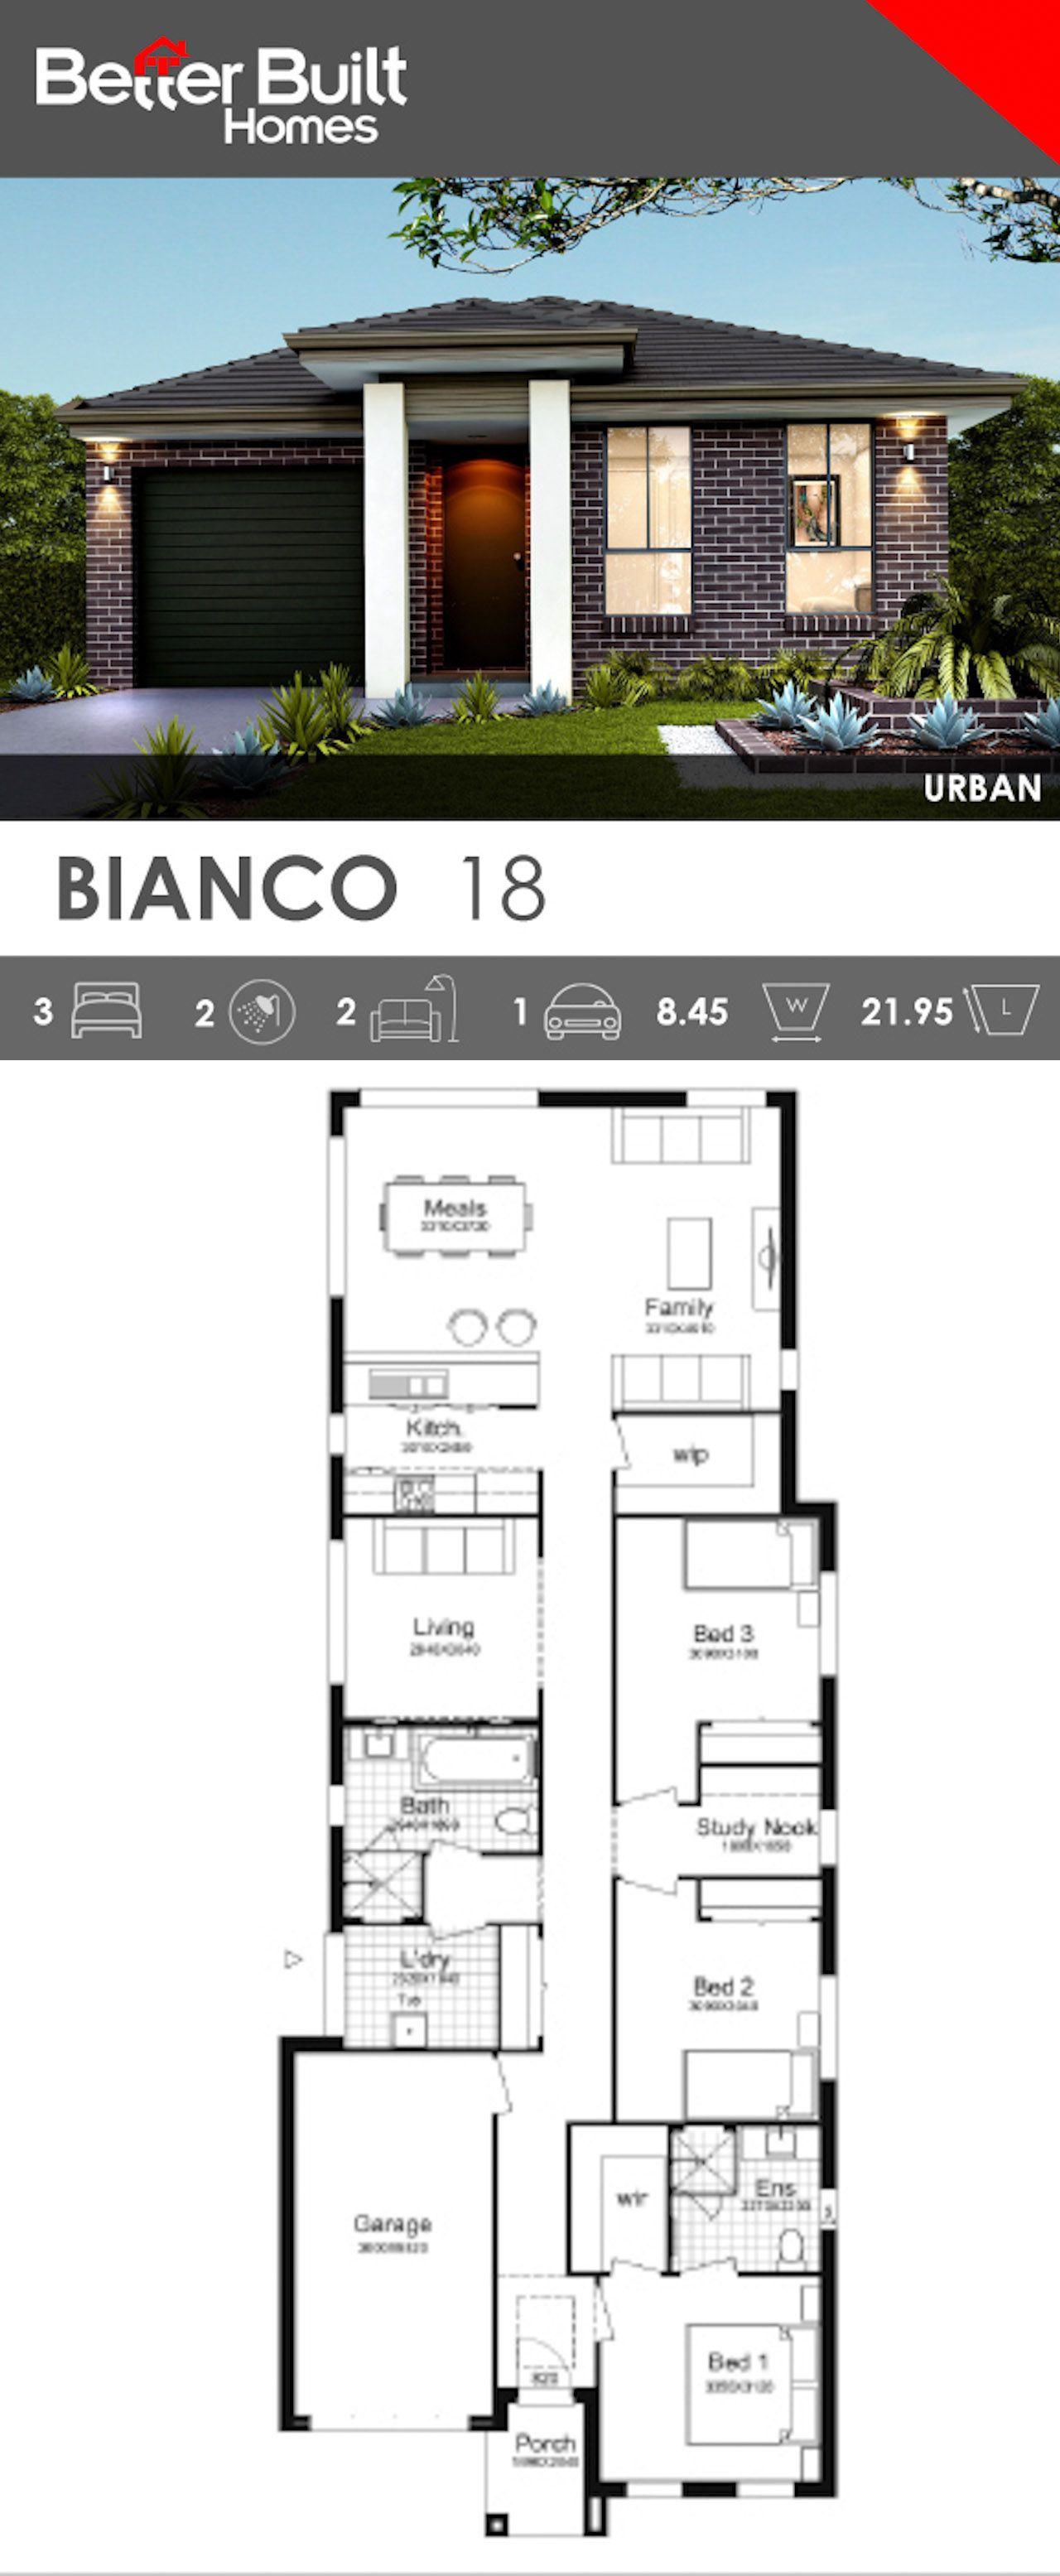 Single Storey House Design The Bianco 18 With Urban Facade Stylish And Unique This Modern Desi Narrow House Plans Single Storey House Plans New House Plans